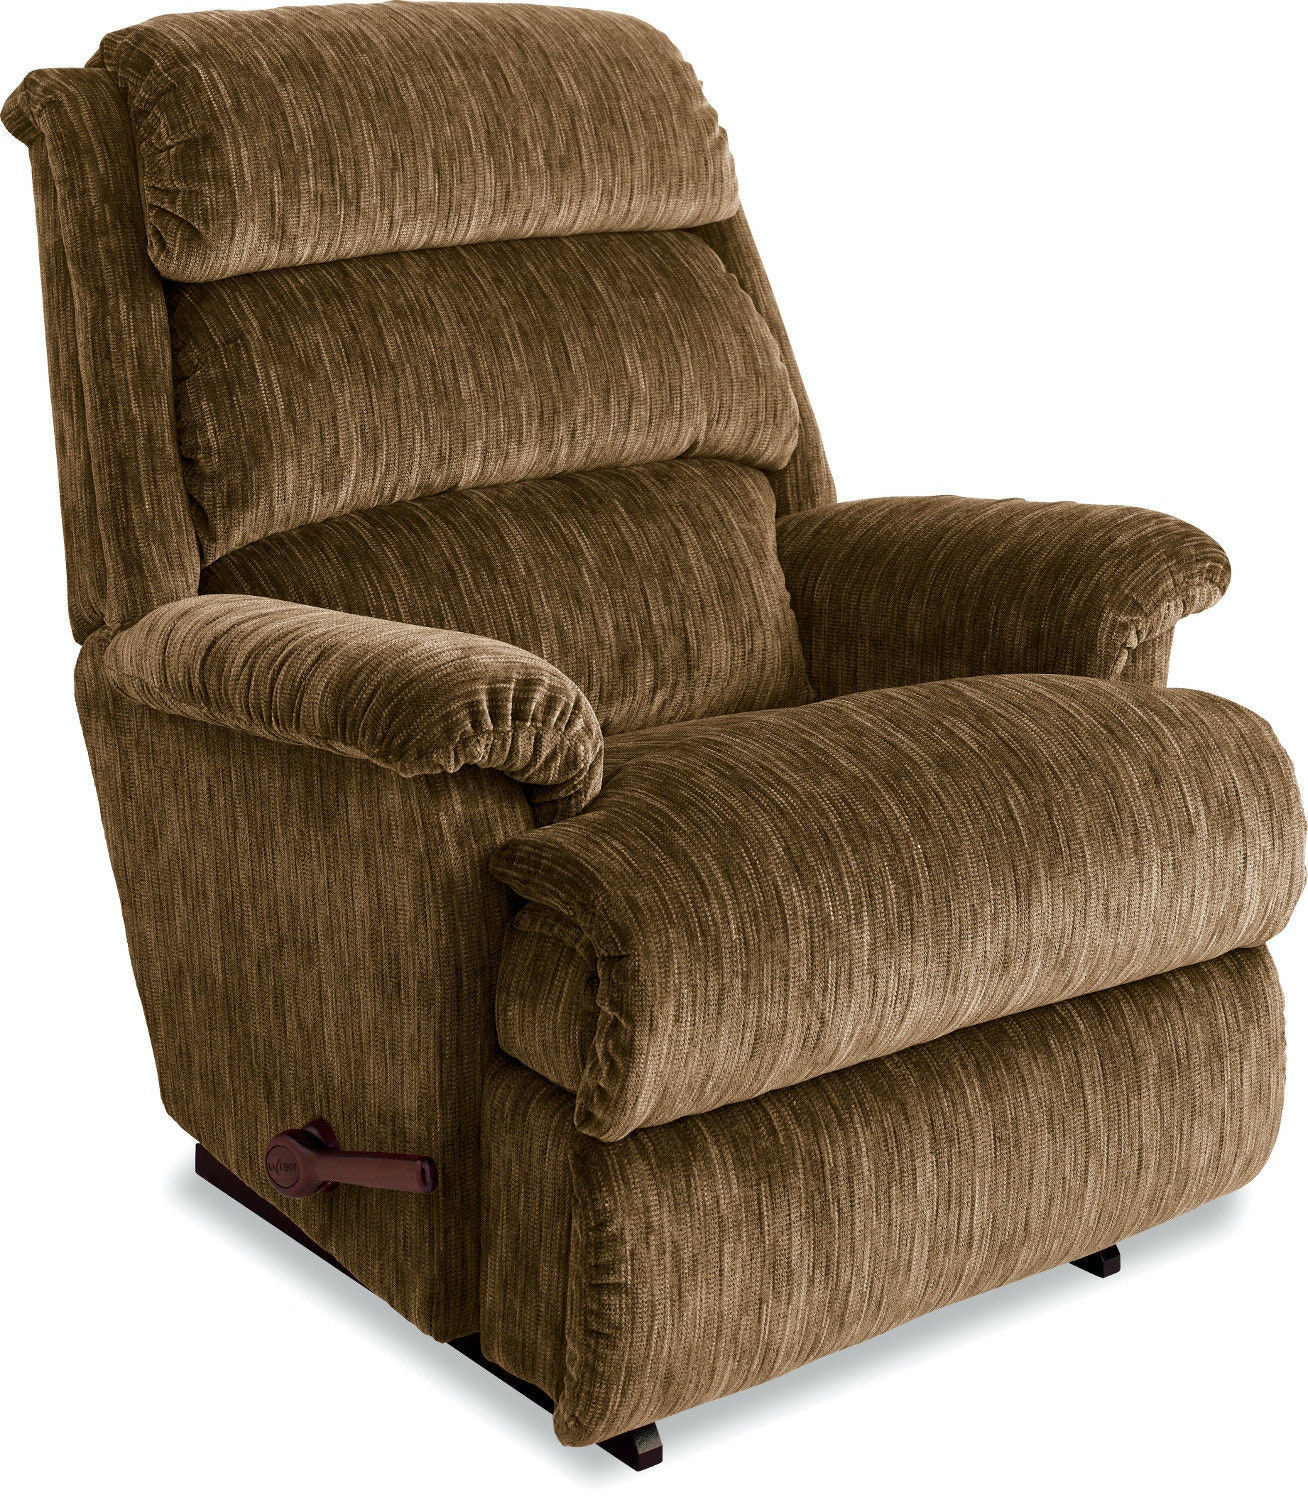 Modern Contemporary Furniture Hickory Furniture Mart Hickory Nc